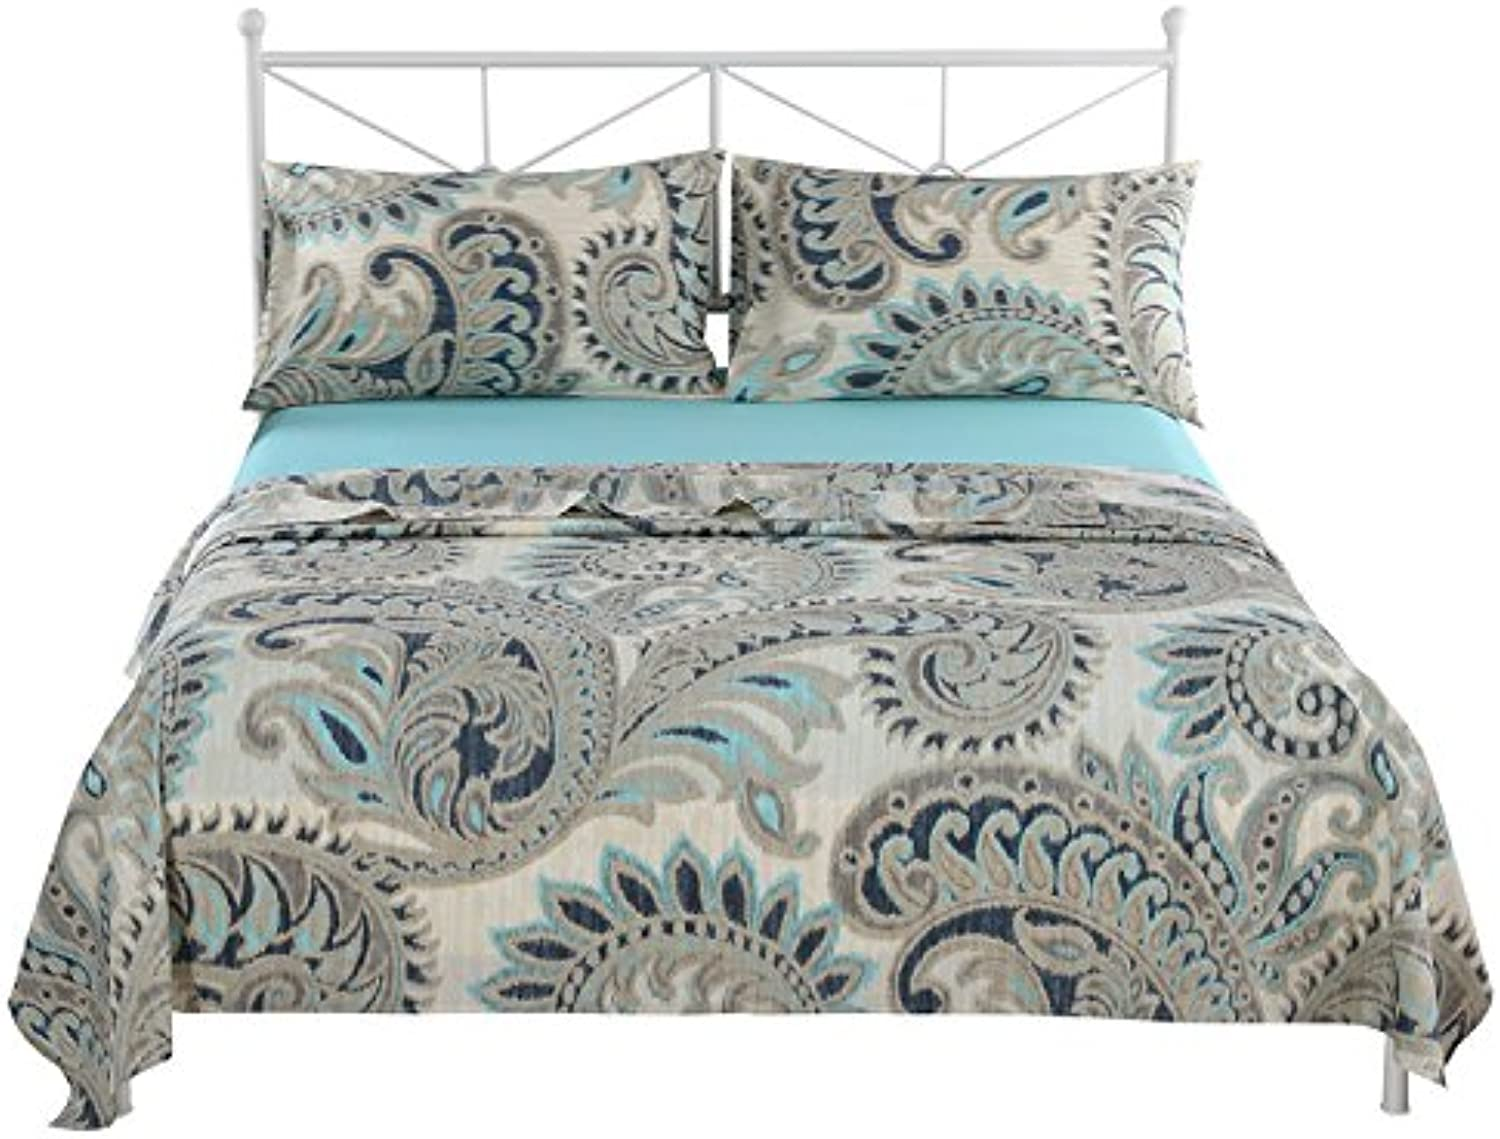 SINOLINK HOME 100% Cotton Premium Quality Printed Bedding Sheet Set Paisley Light bluee 4 Piece Set Including 1 Flat Sheet+1 Fitted Sheet +2 Pillow Cases - Full Size